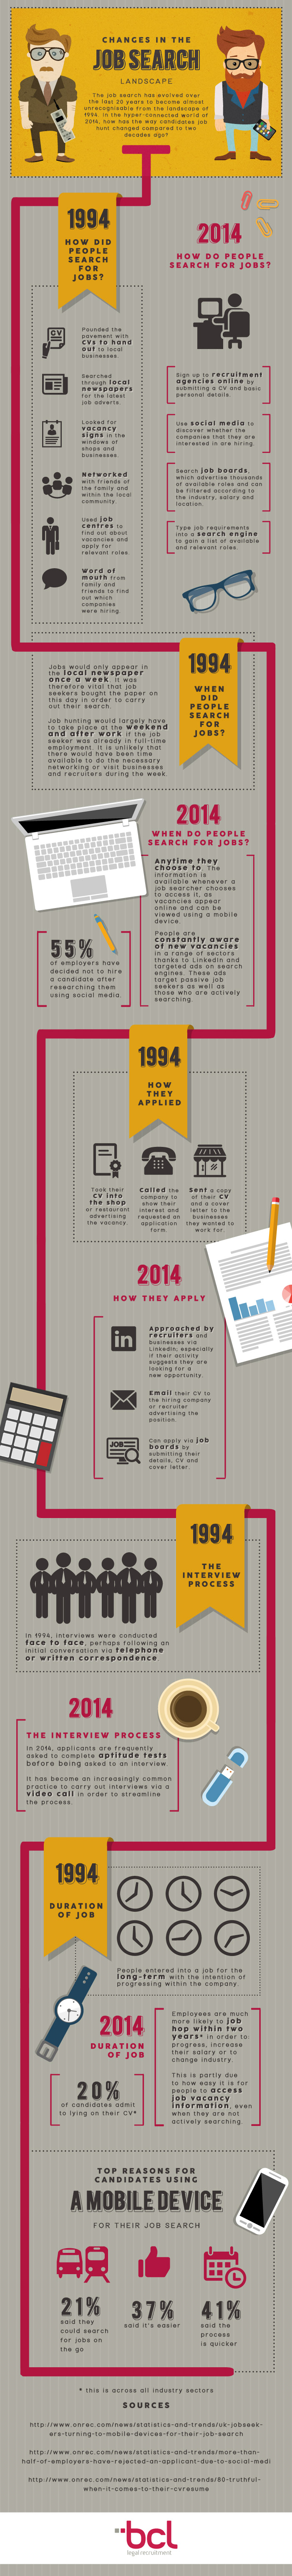 Changes in the job search landscape